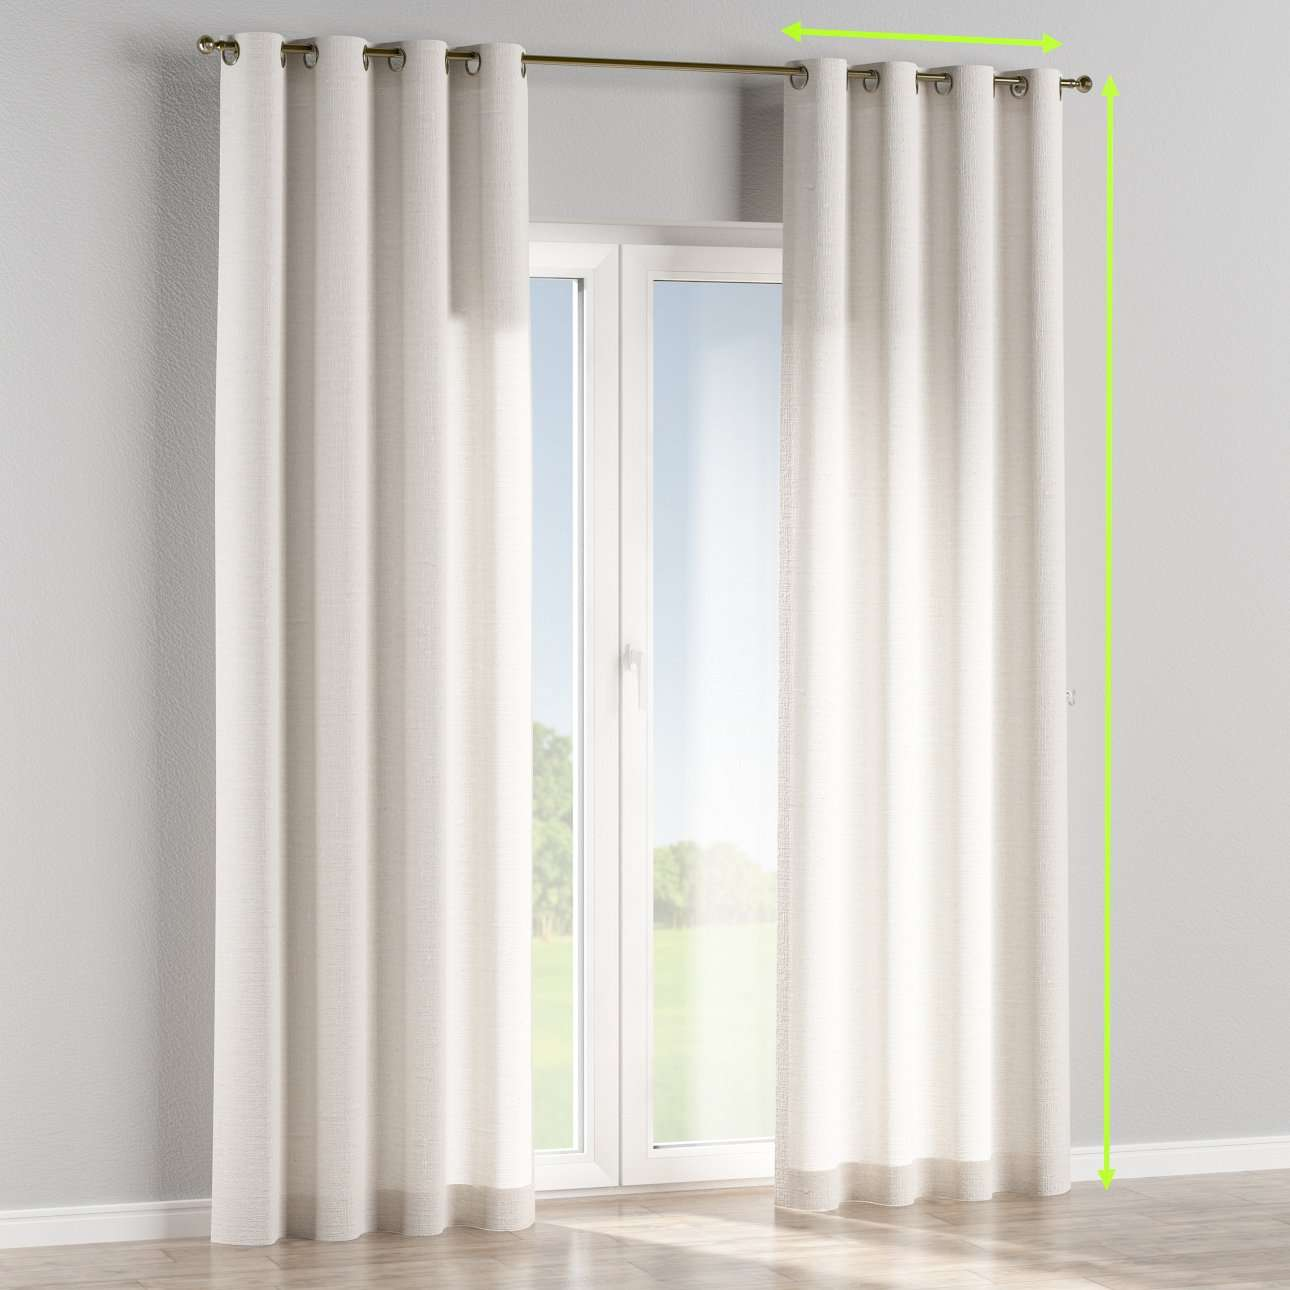 Eyelet curtains in collection Linen , fabric: 392-04